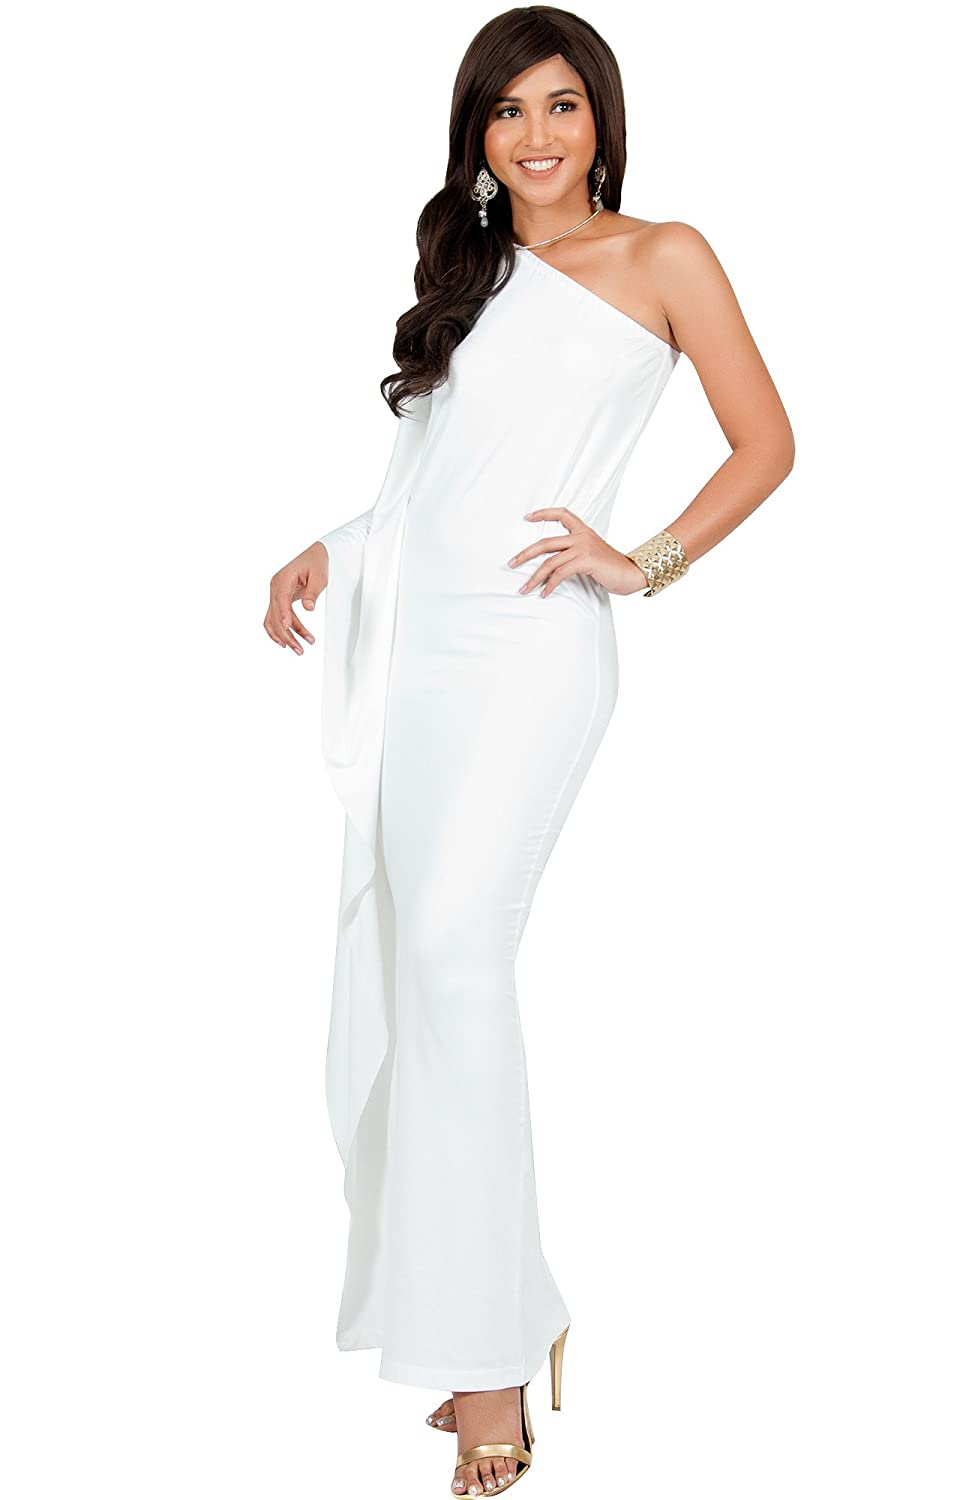 4b71fb66925 PLUS SIZE - This great maxi dress design is also available in plus sizes.  STYLE - A one shoulder ...